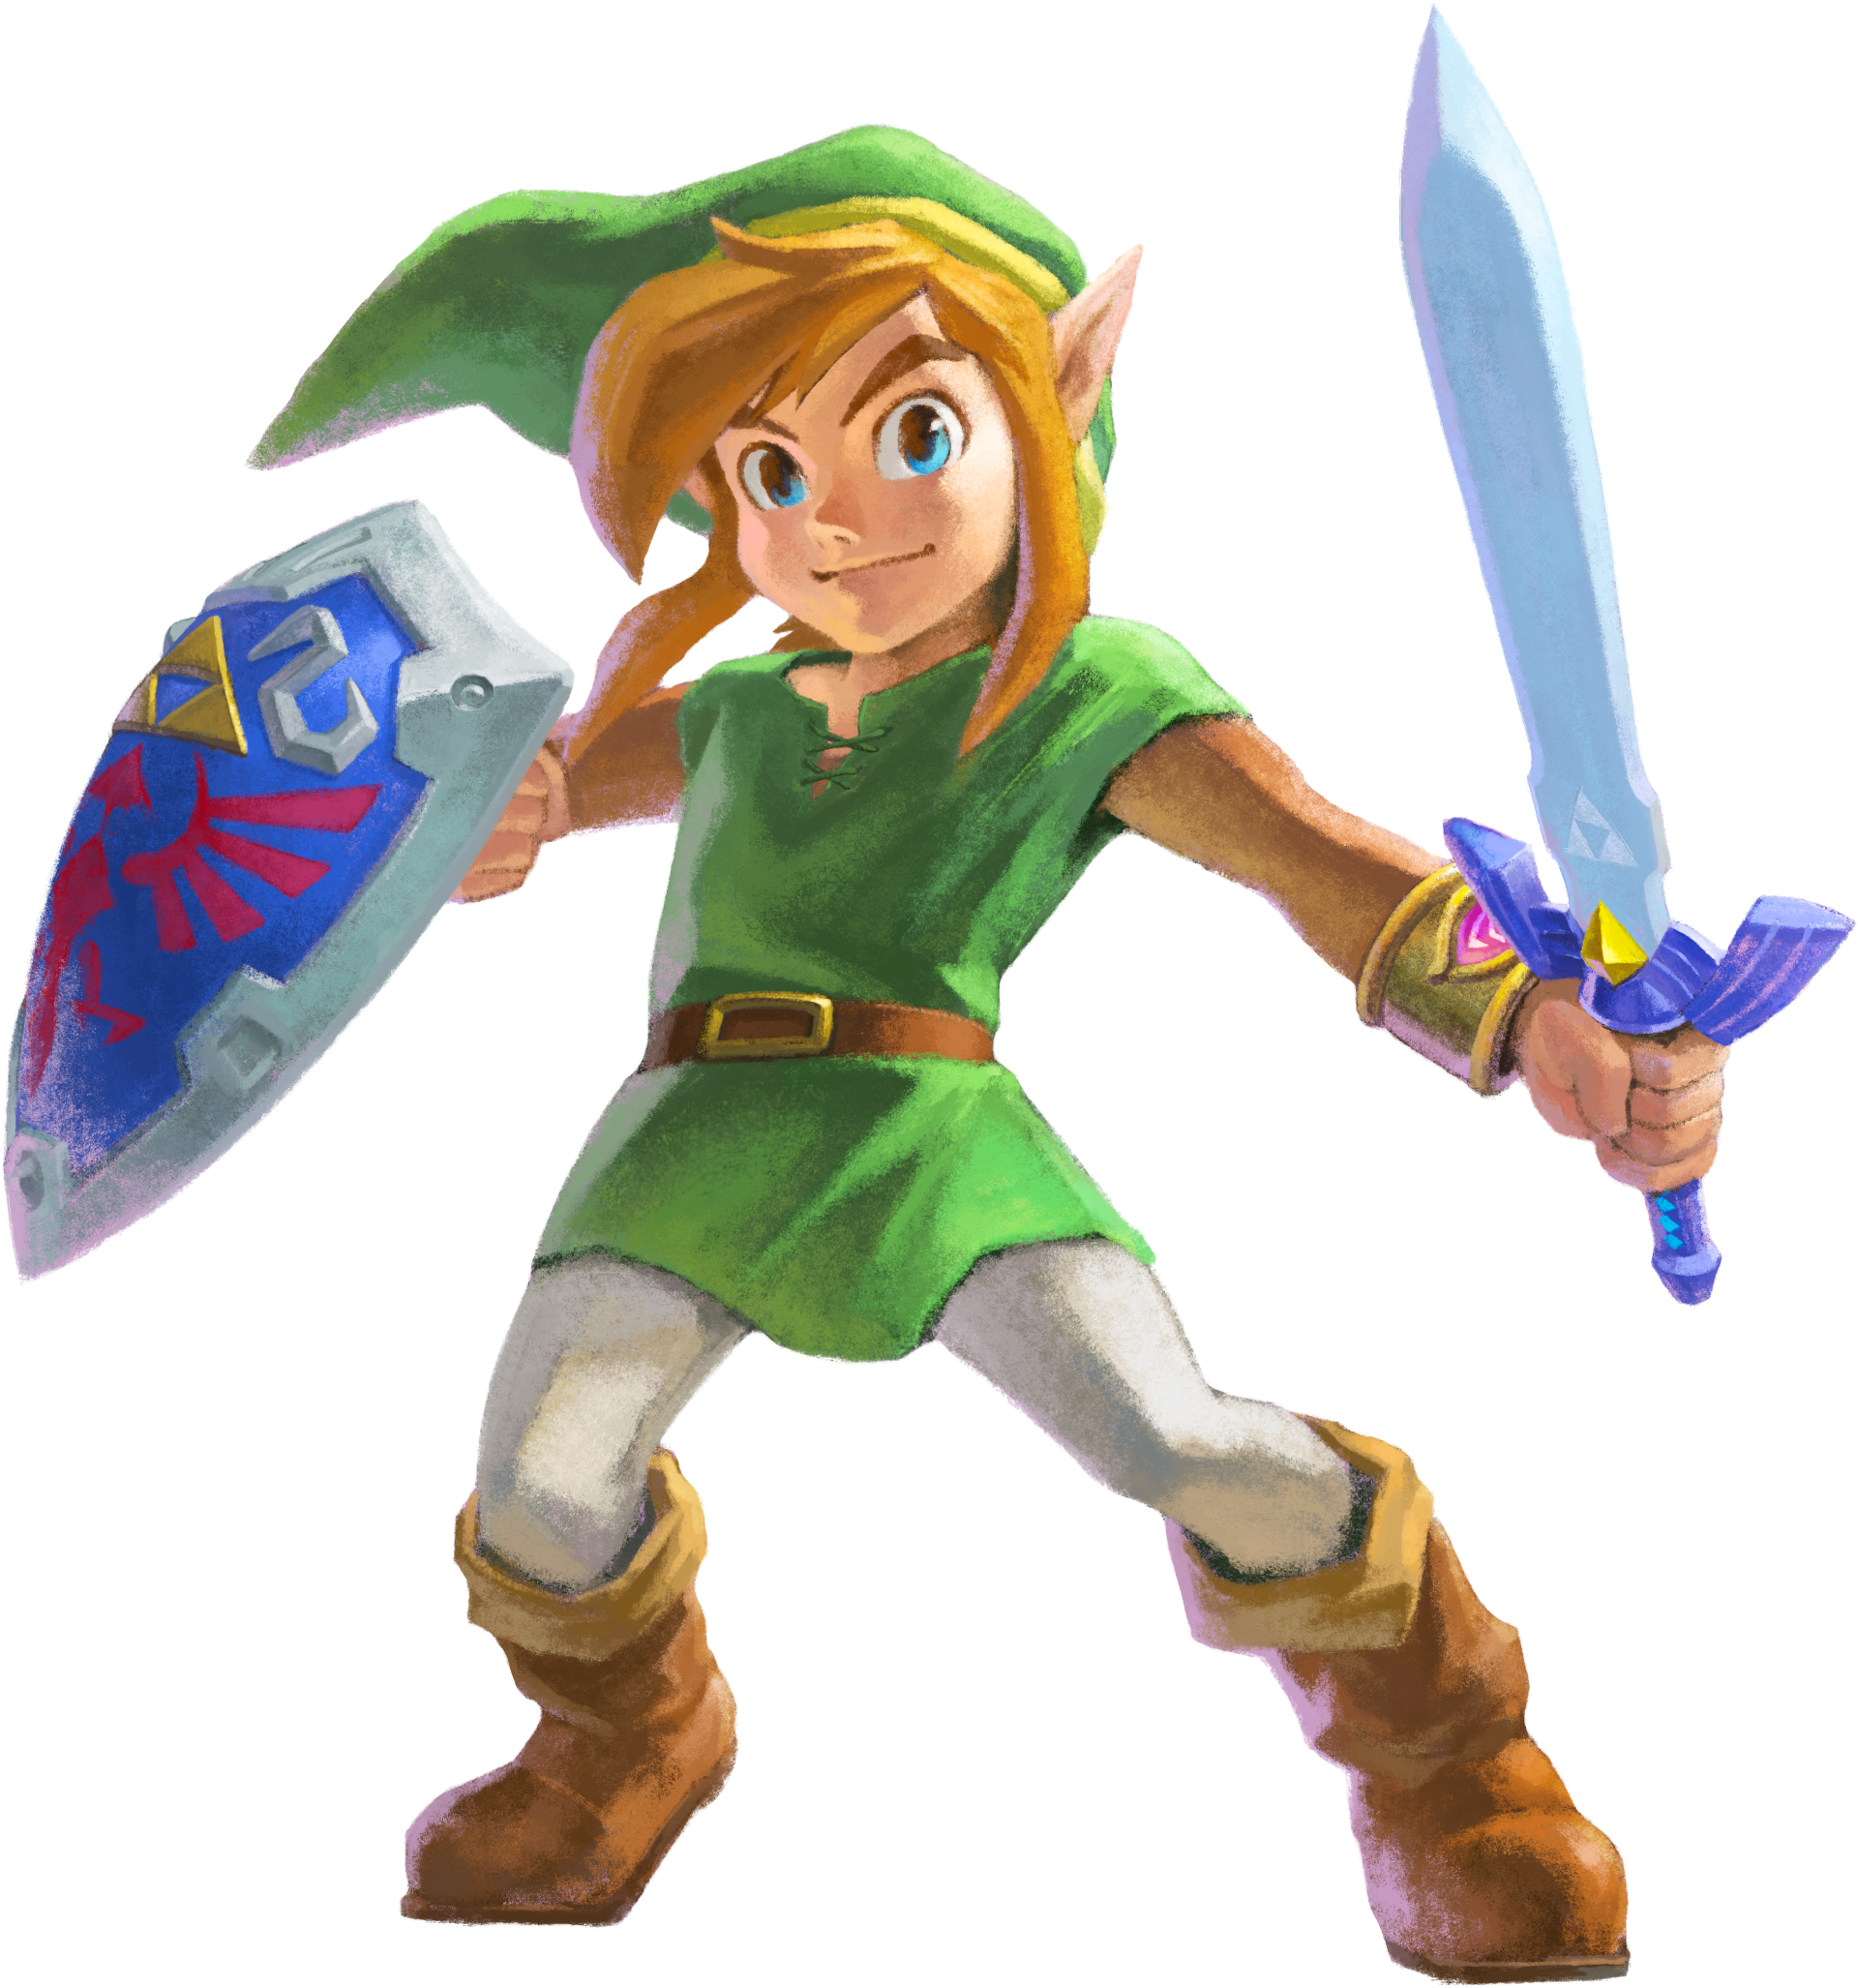 Full resolution PlusPng.com  - The Legend Of Zelda PNG